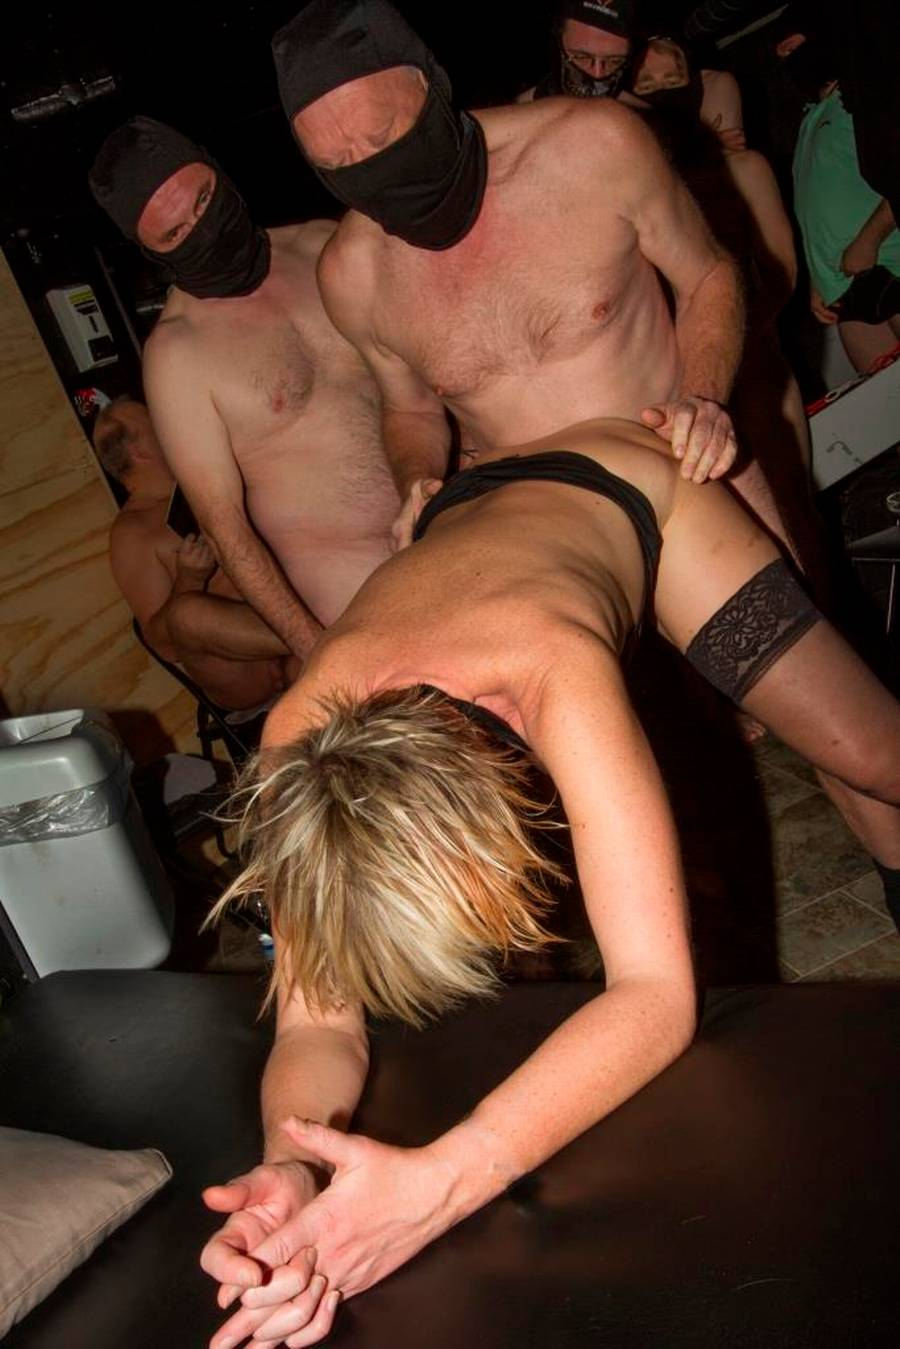 joys swingerklub massage escort amager